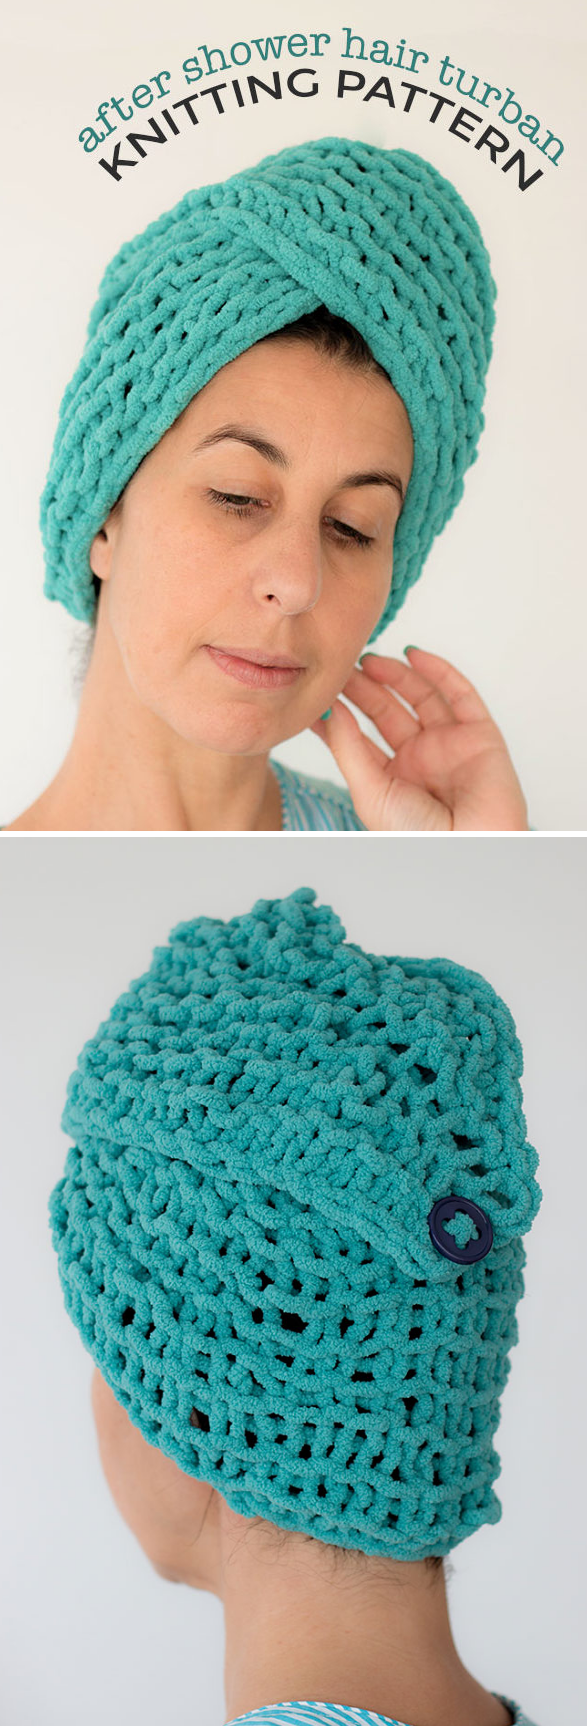 Free Knitting Pattern for After Shower Hair Turban - This easy head ...